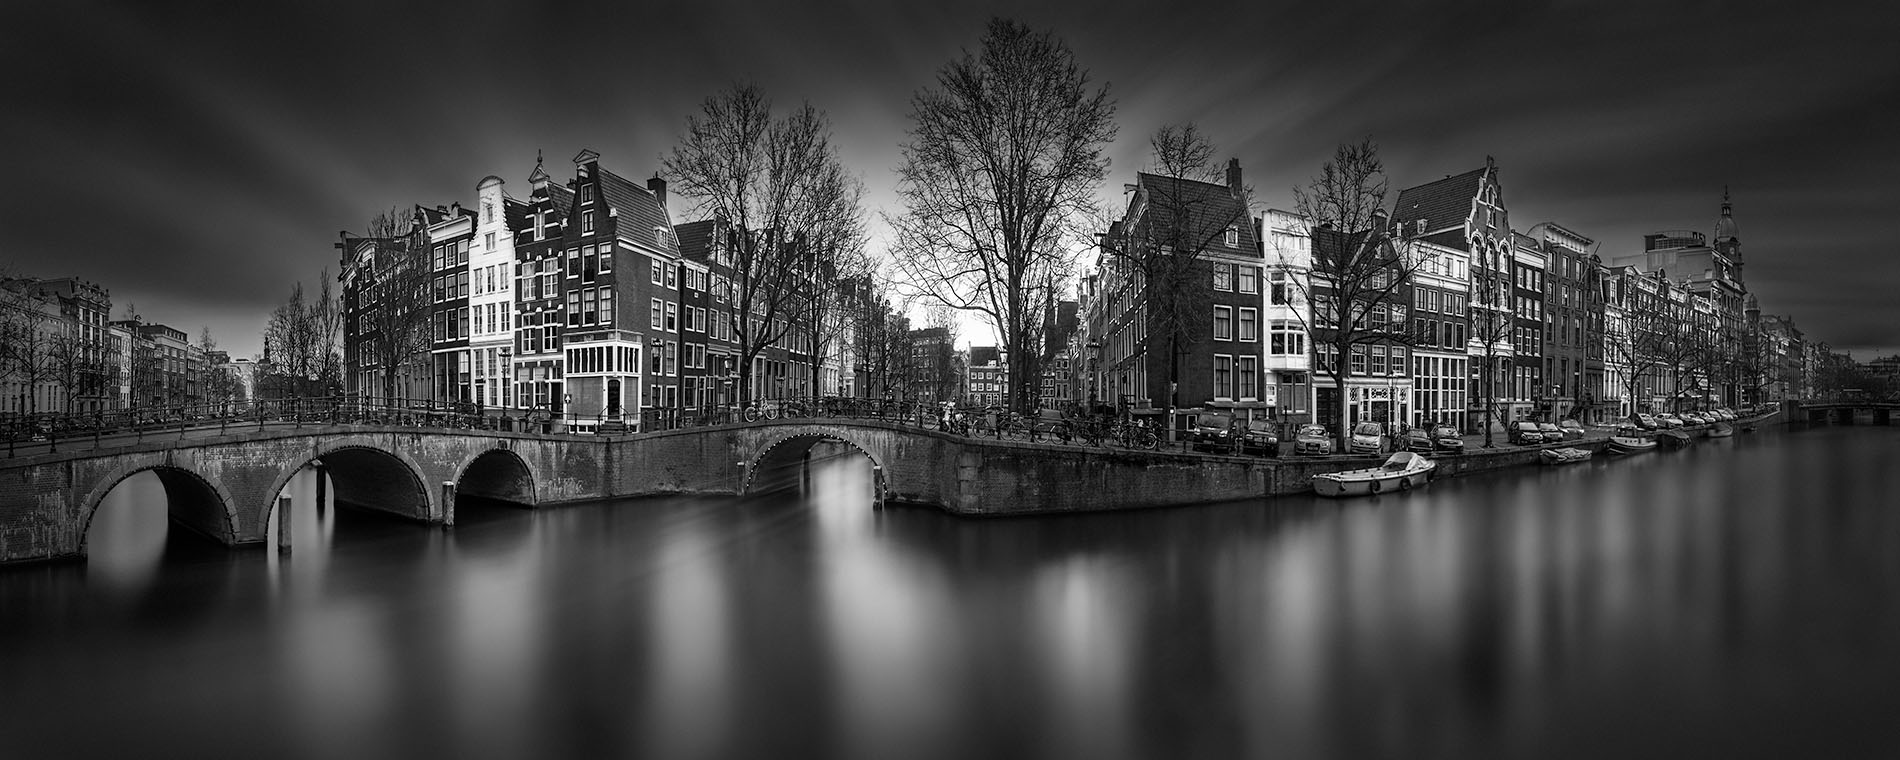 A Tale of the Past I - Keizersgracht Canal Amsterdam - © Julia Anna Gospodarou 2017 - long exposure photography in an urban environment